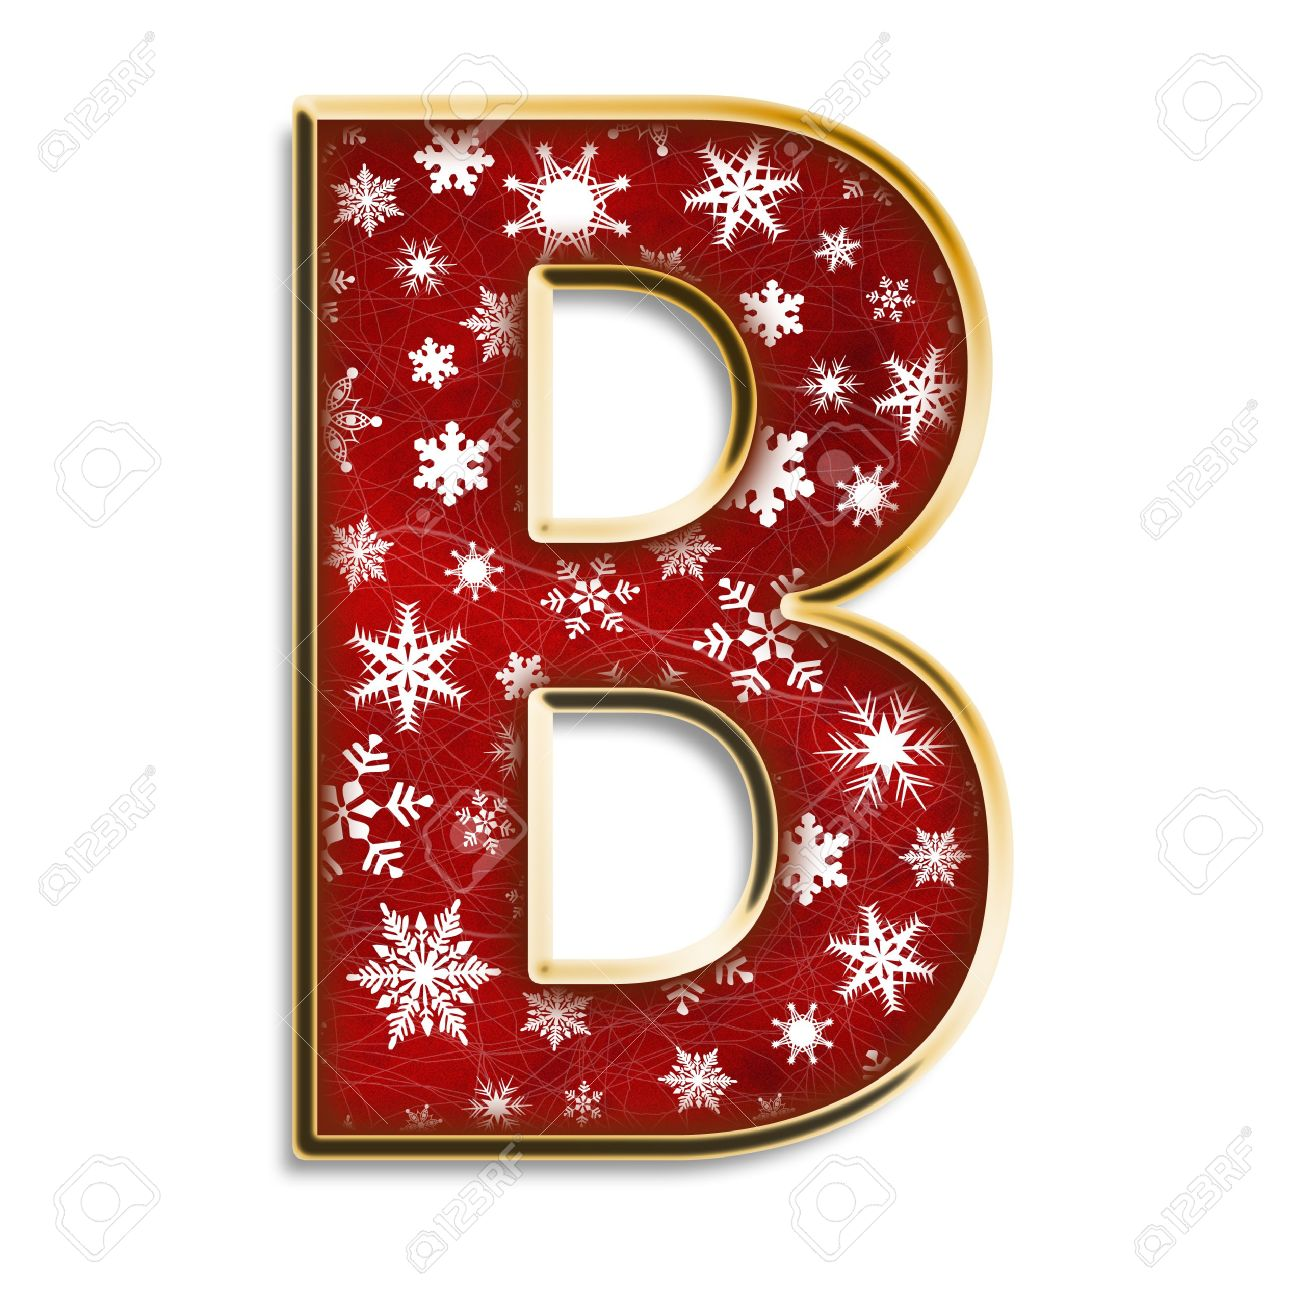 White Snowflakes On Red With Gold Capital Letter B Isolated On